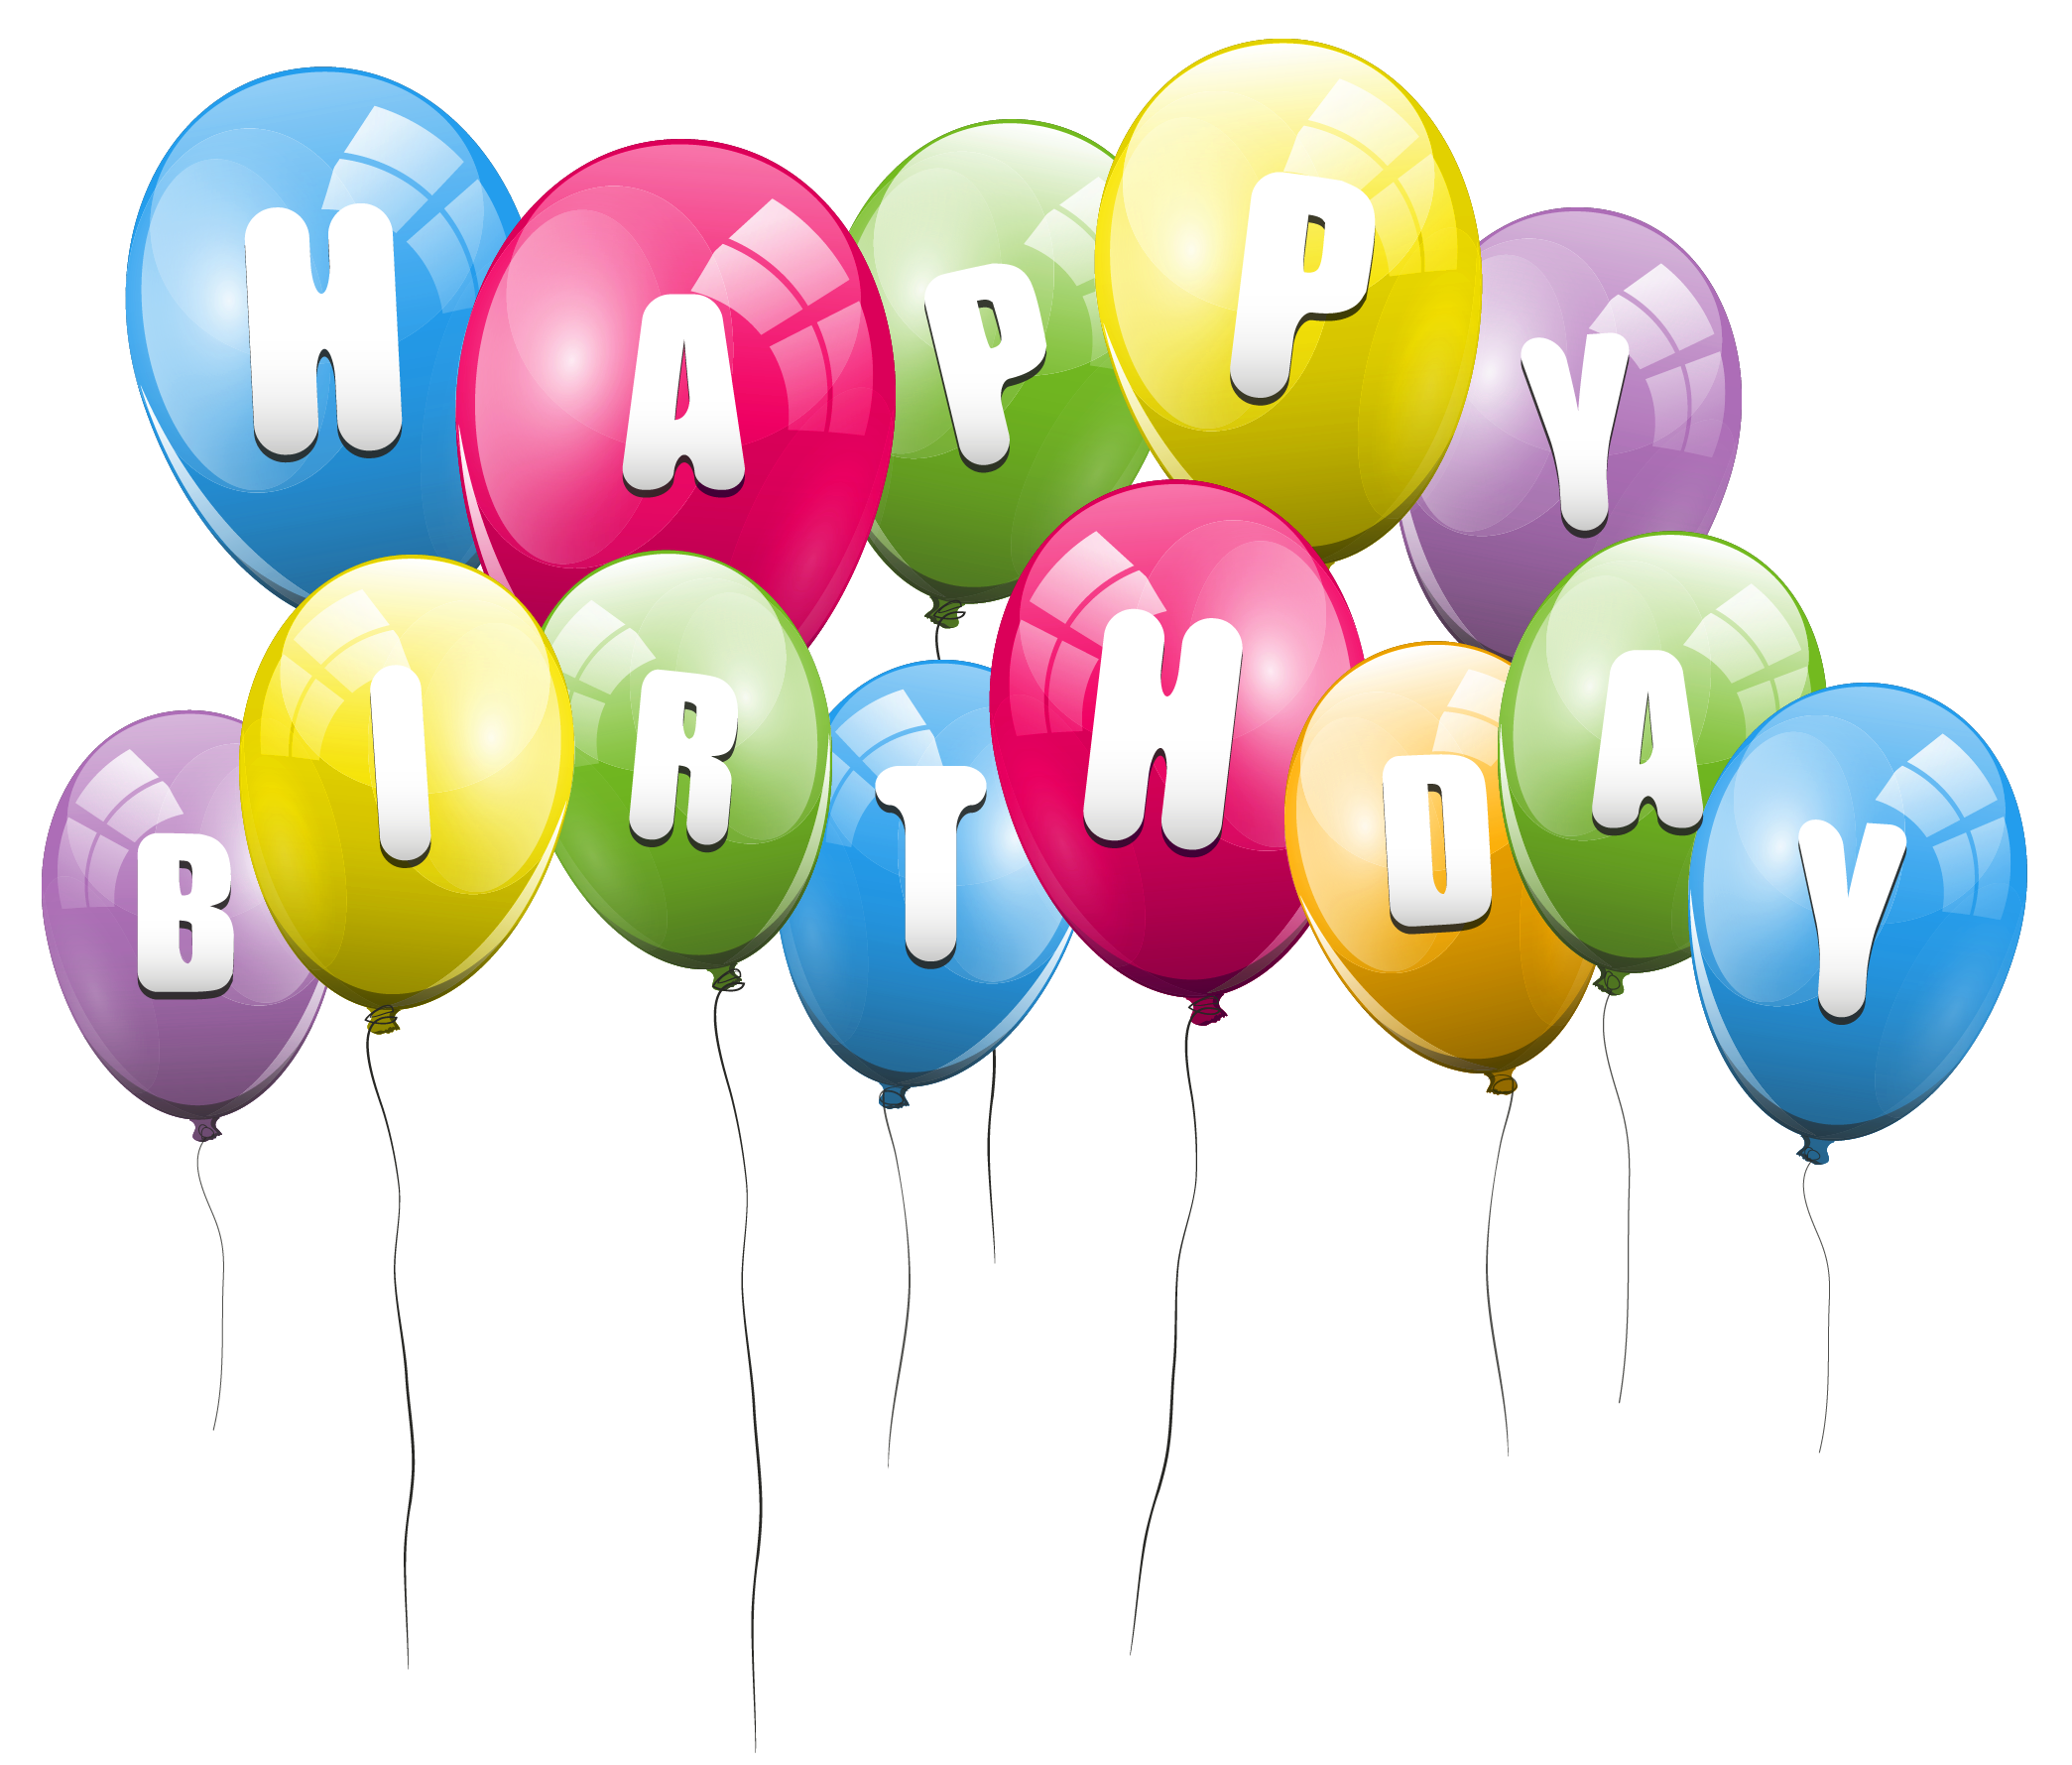 31 Birthday Balloon Png Free Cliparts Th-31 Birthday Balloon Png Free Cliparts That You Can Download To You-0